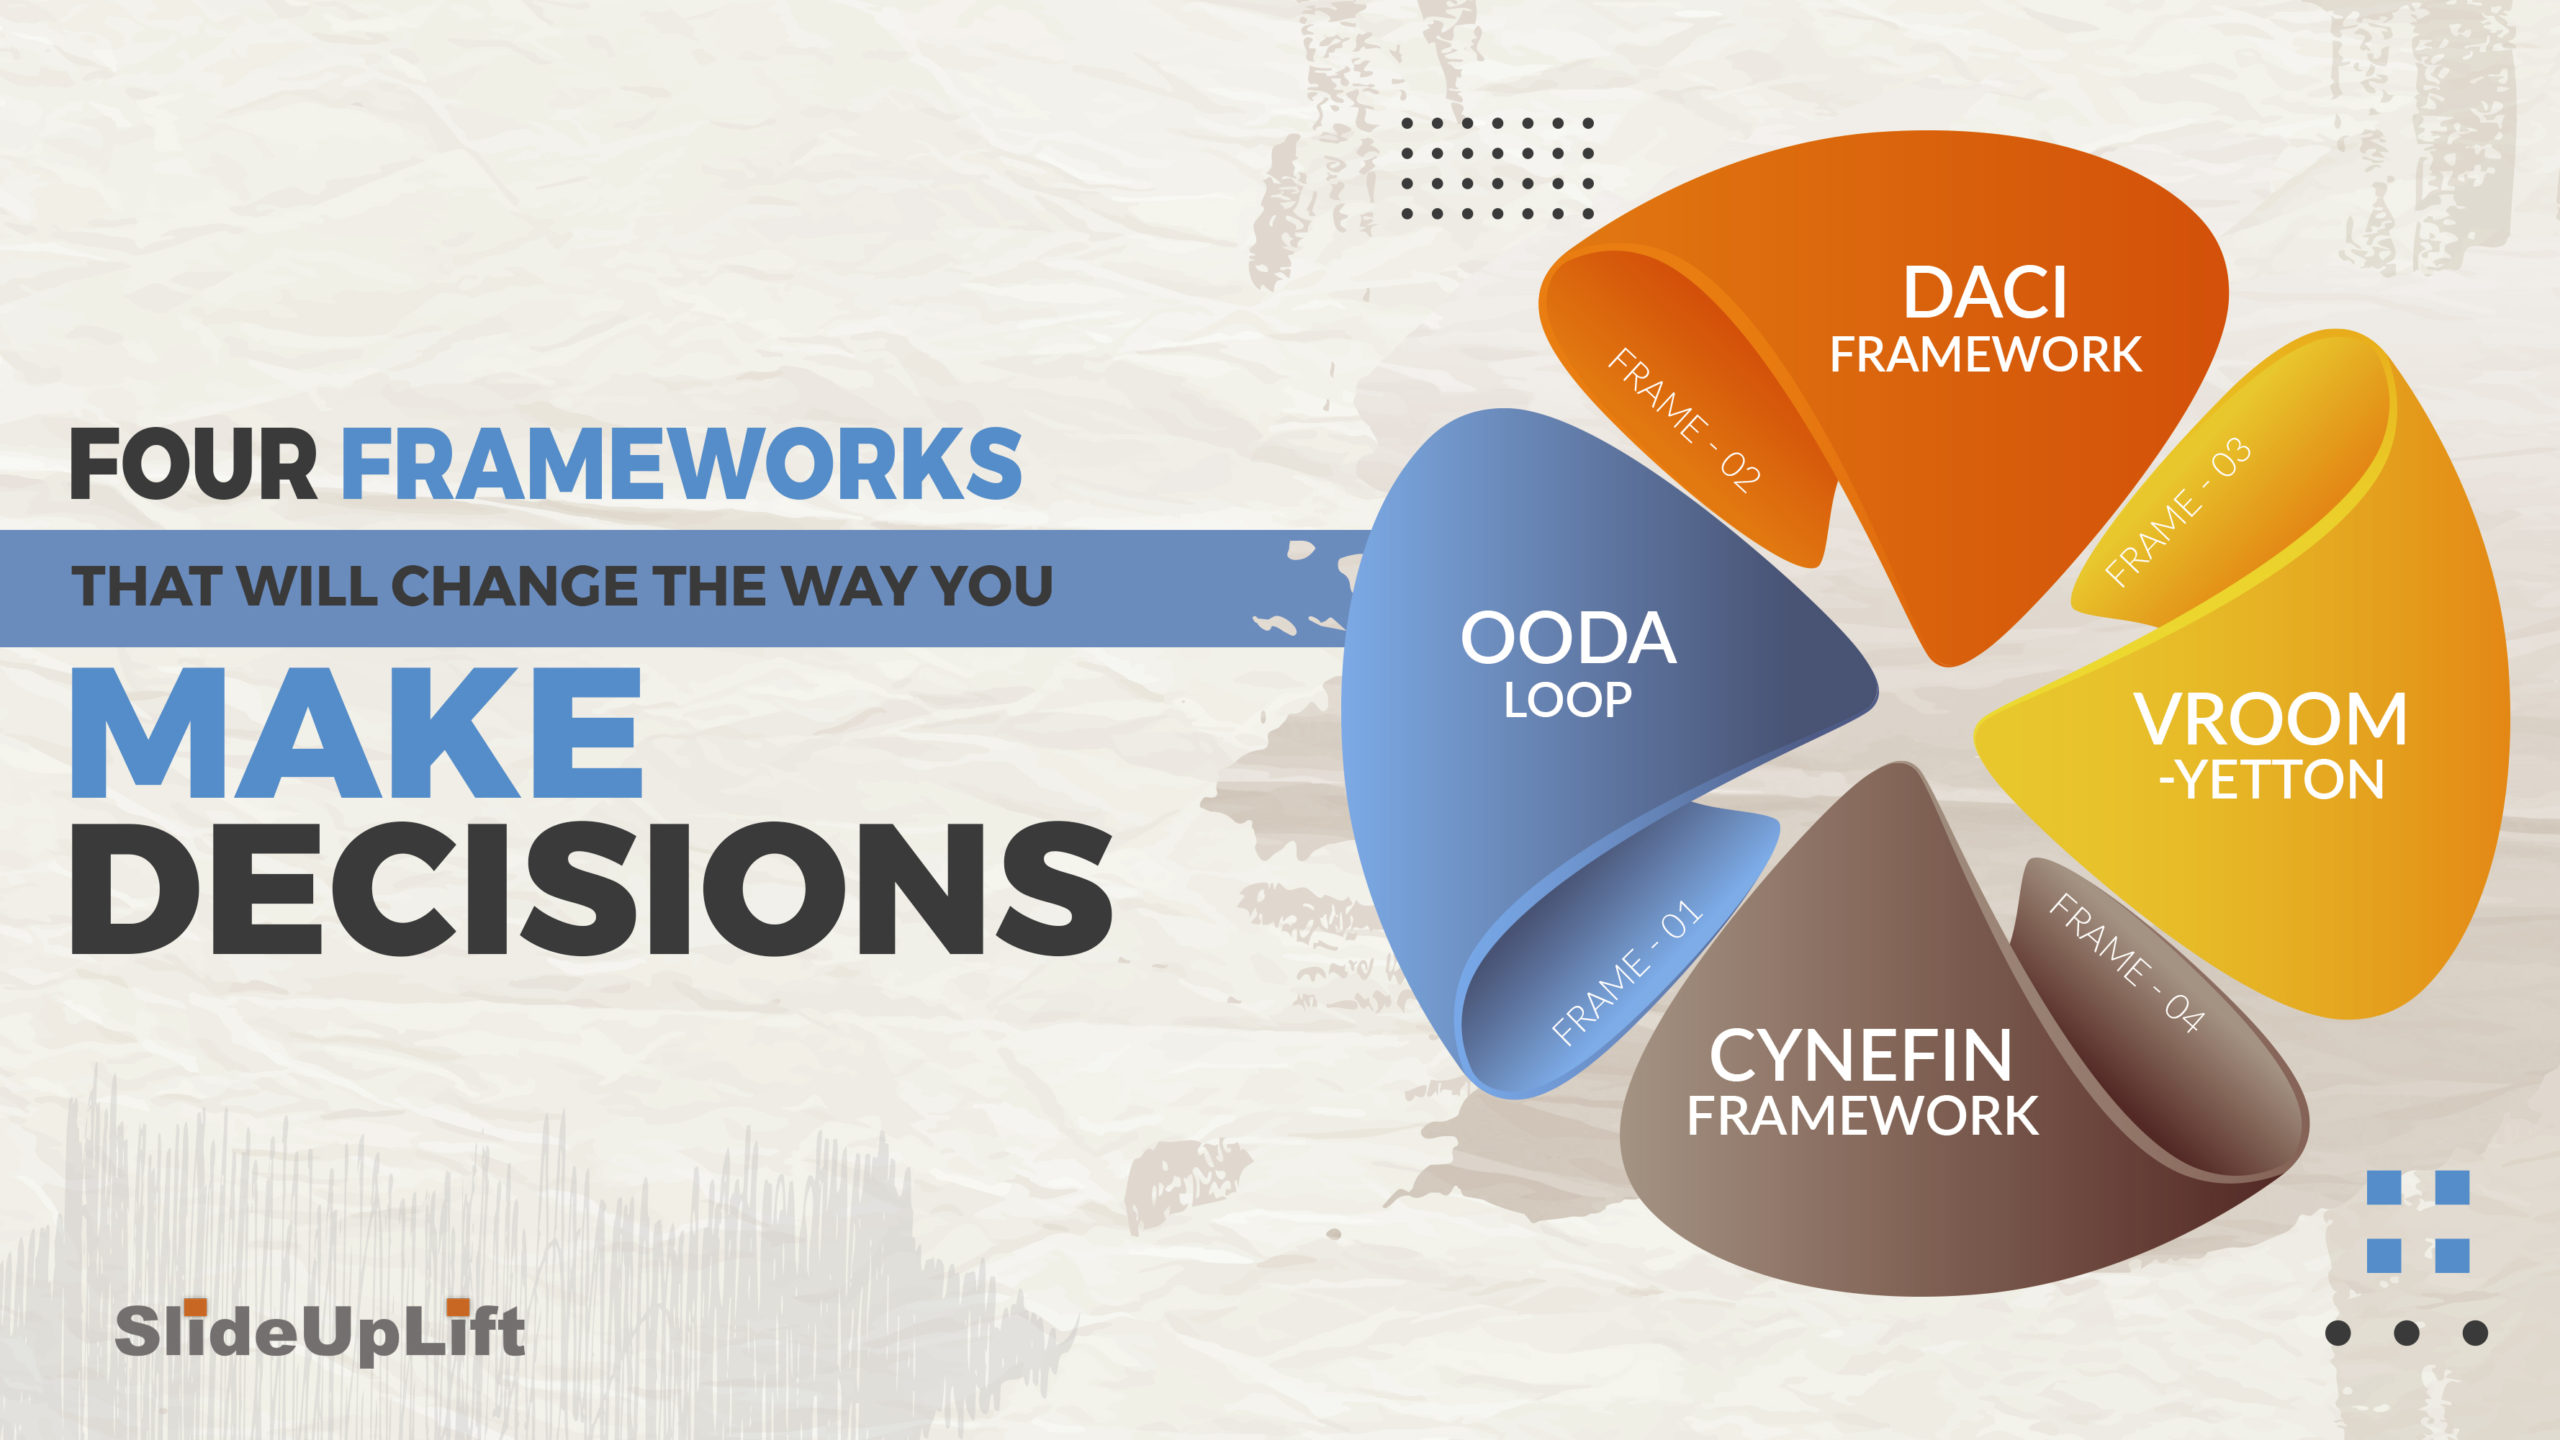 4 Decision Frameworks That Will Change The Way You Make Decisions